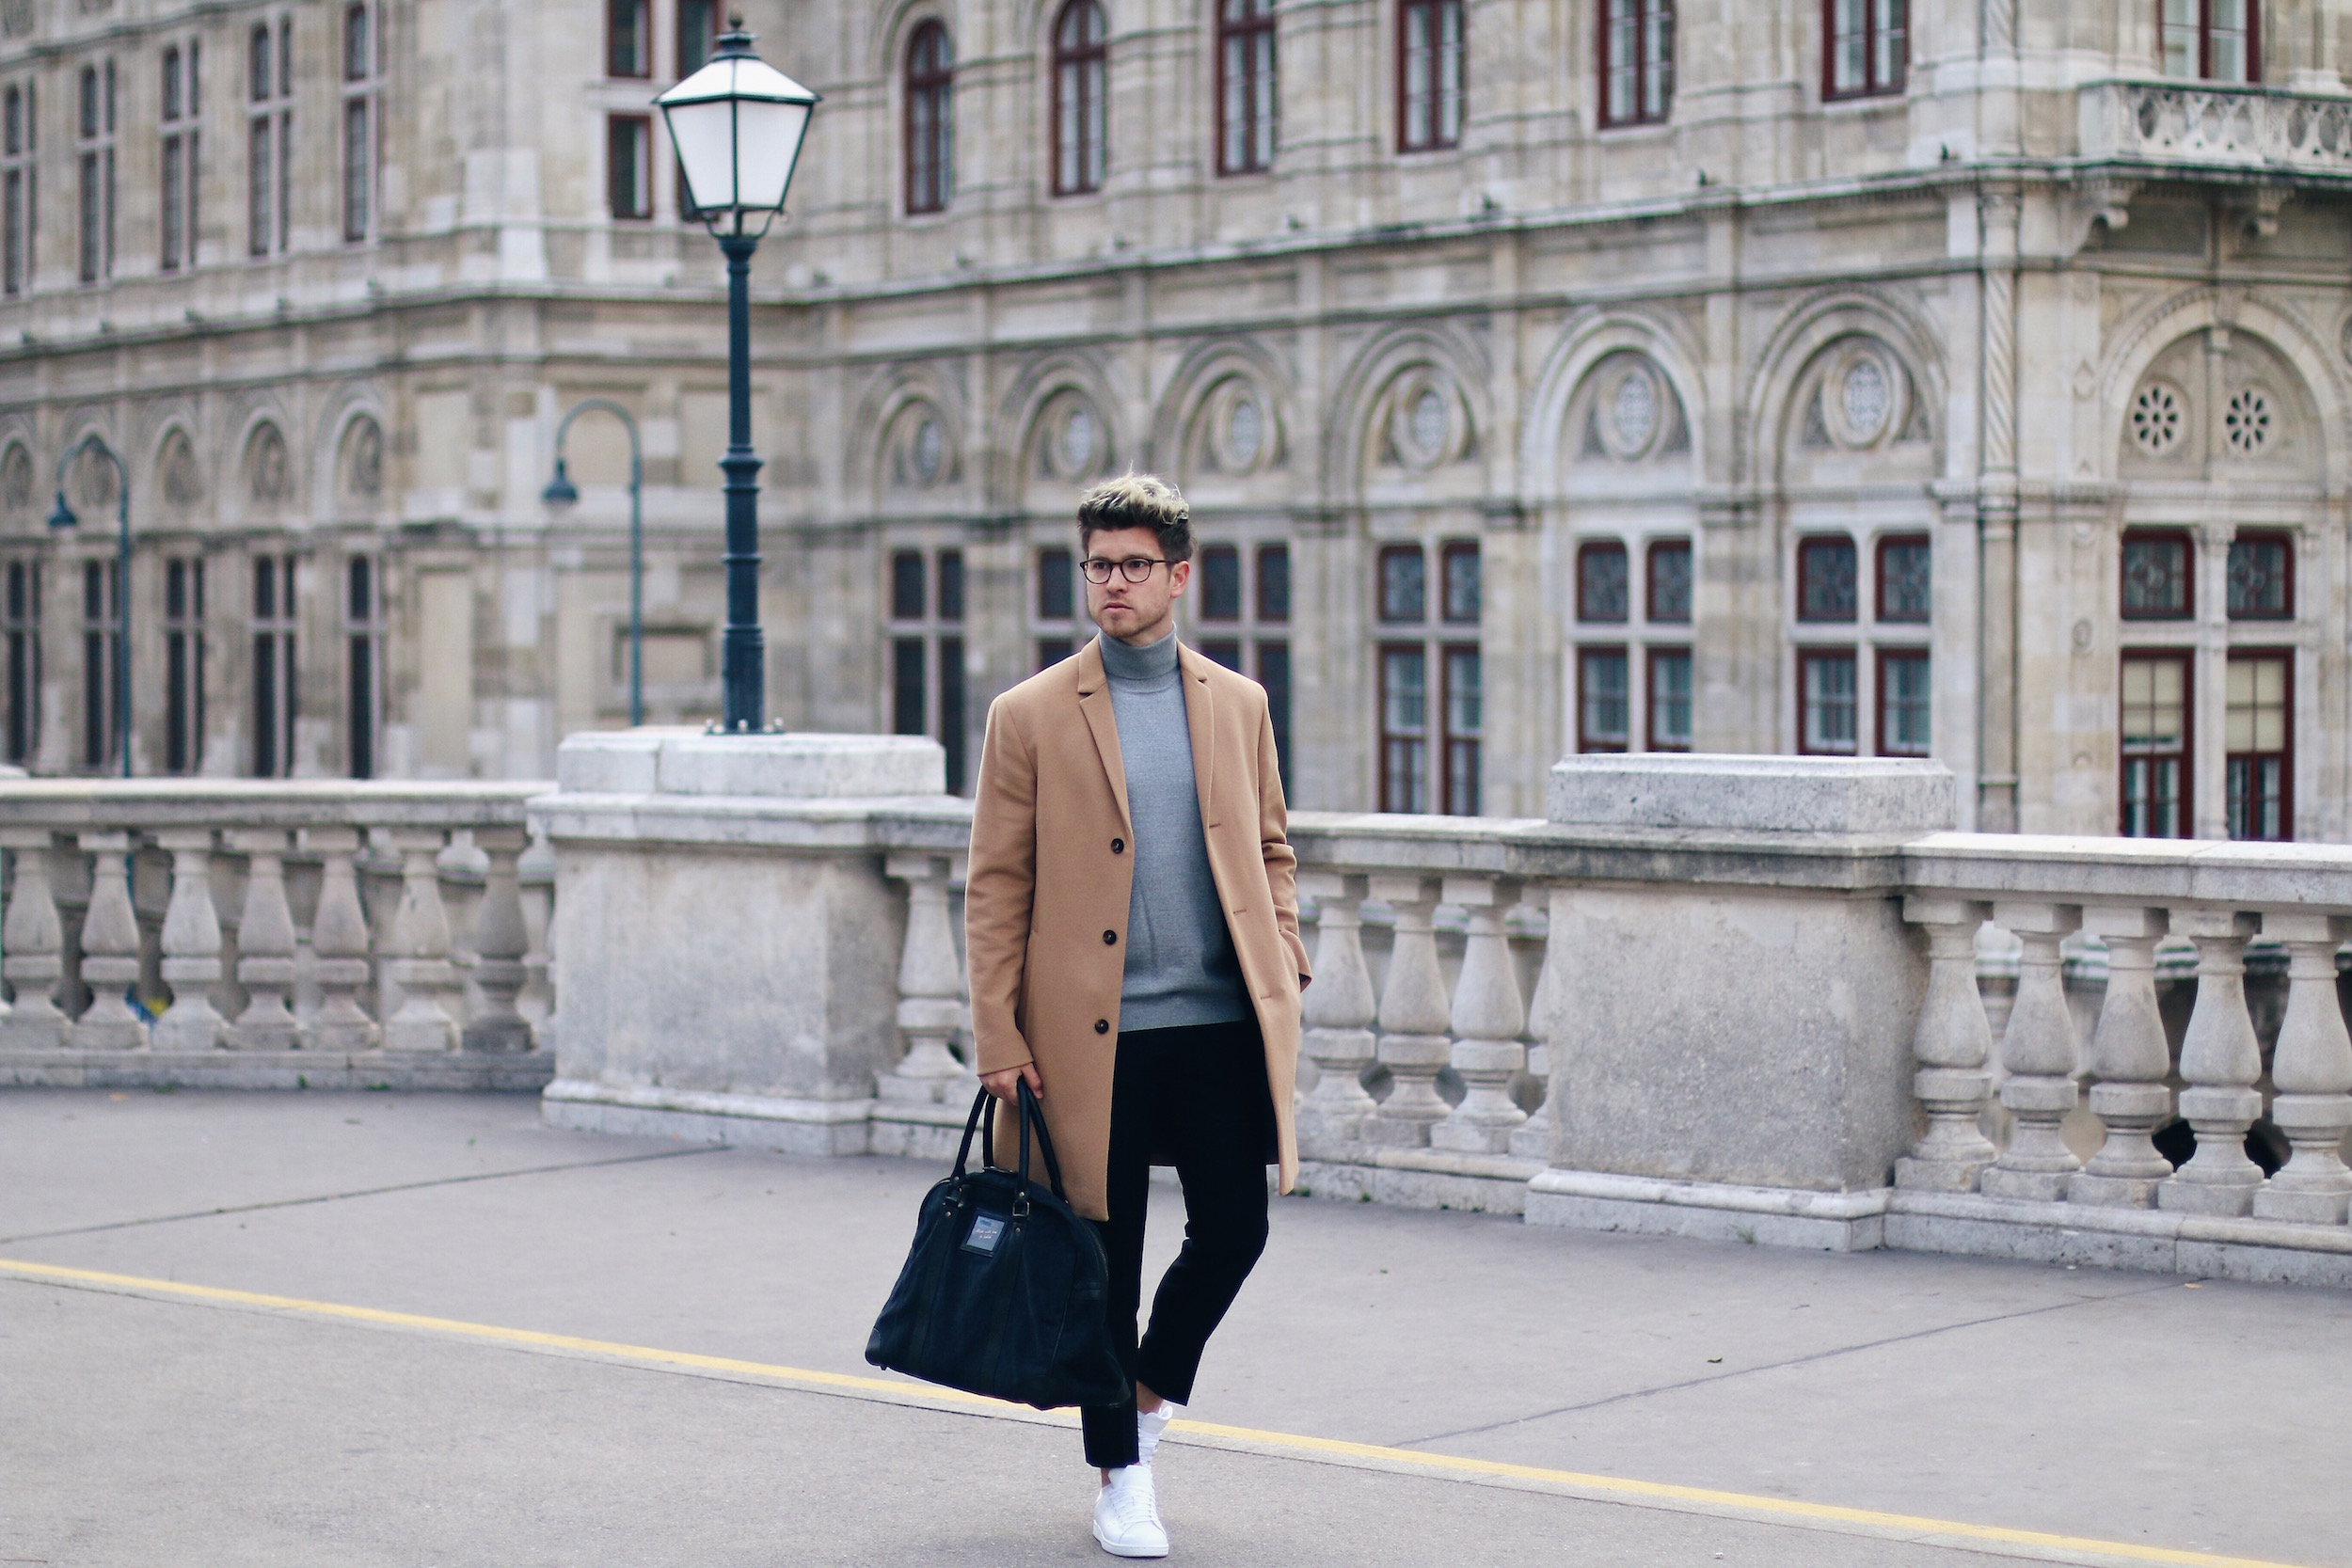 Peek & Cloppenburg Online Shop Launch Austria_Outfit Calvin Klein Camel Coat by Meanwhile in Awesometown_Austrian Mens Fashion and Lifestyle Blog 13